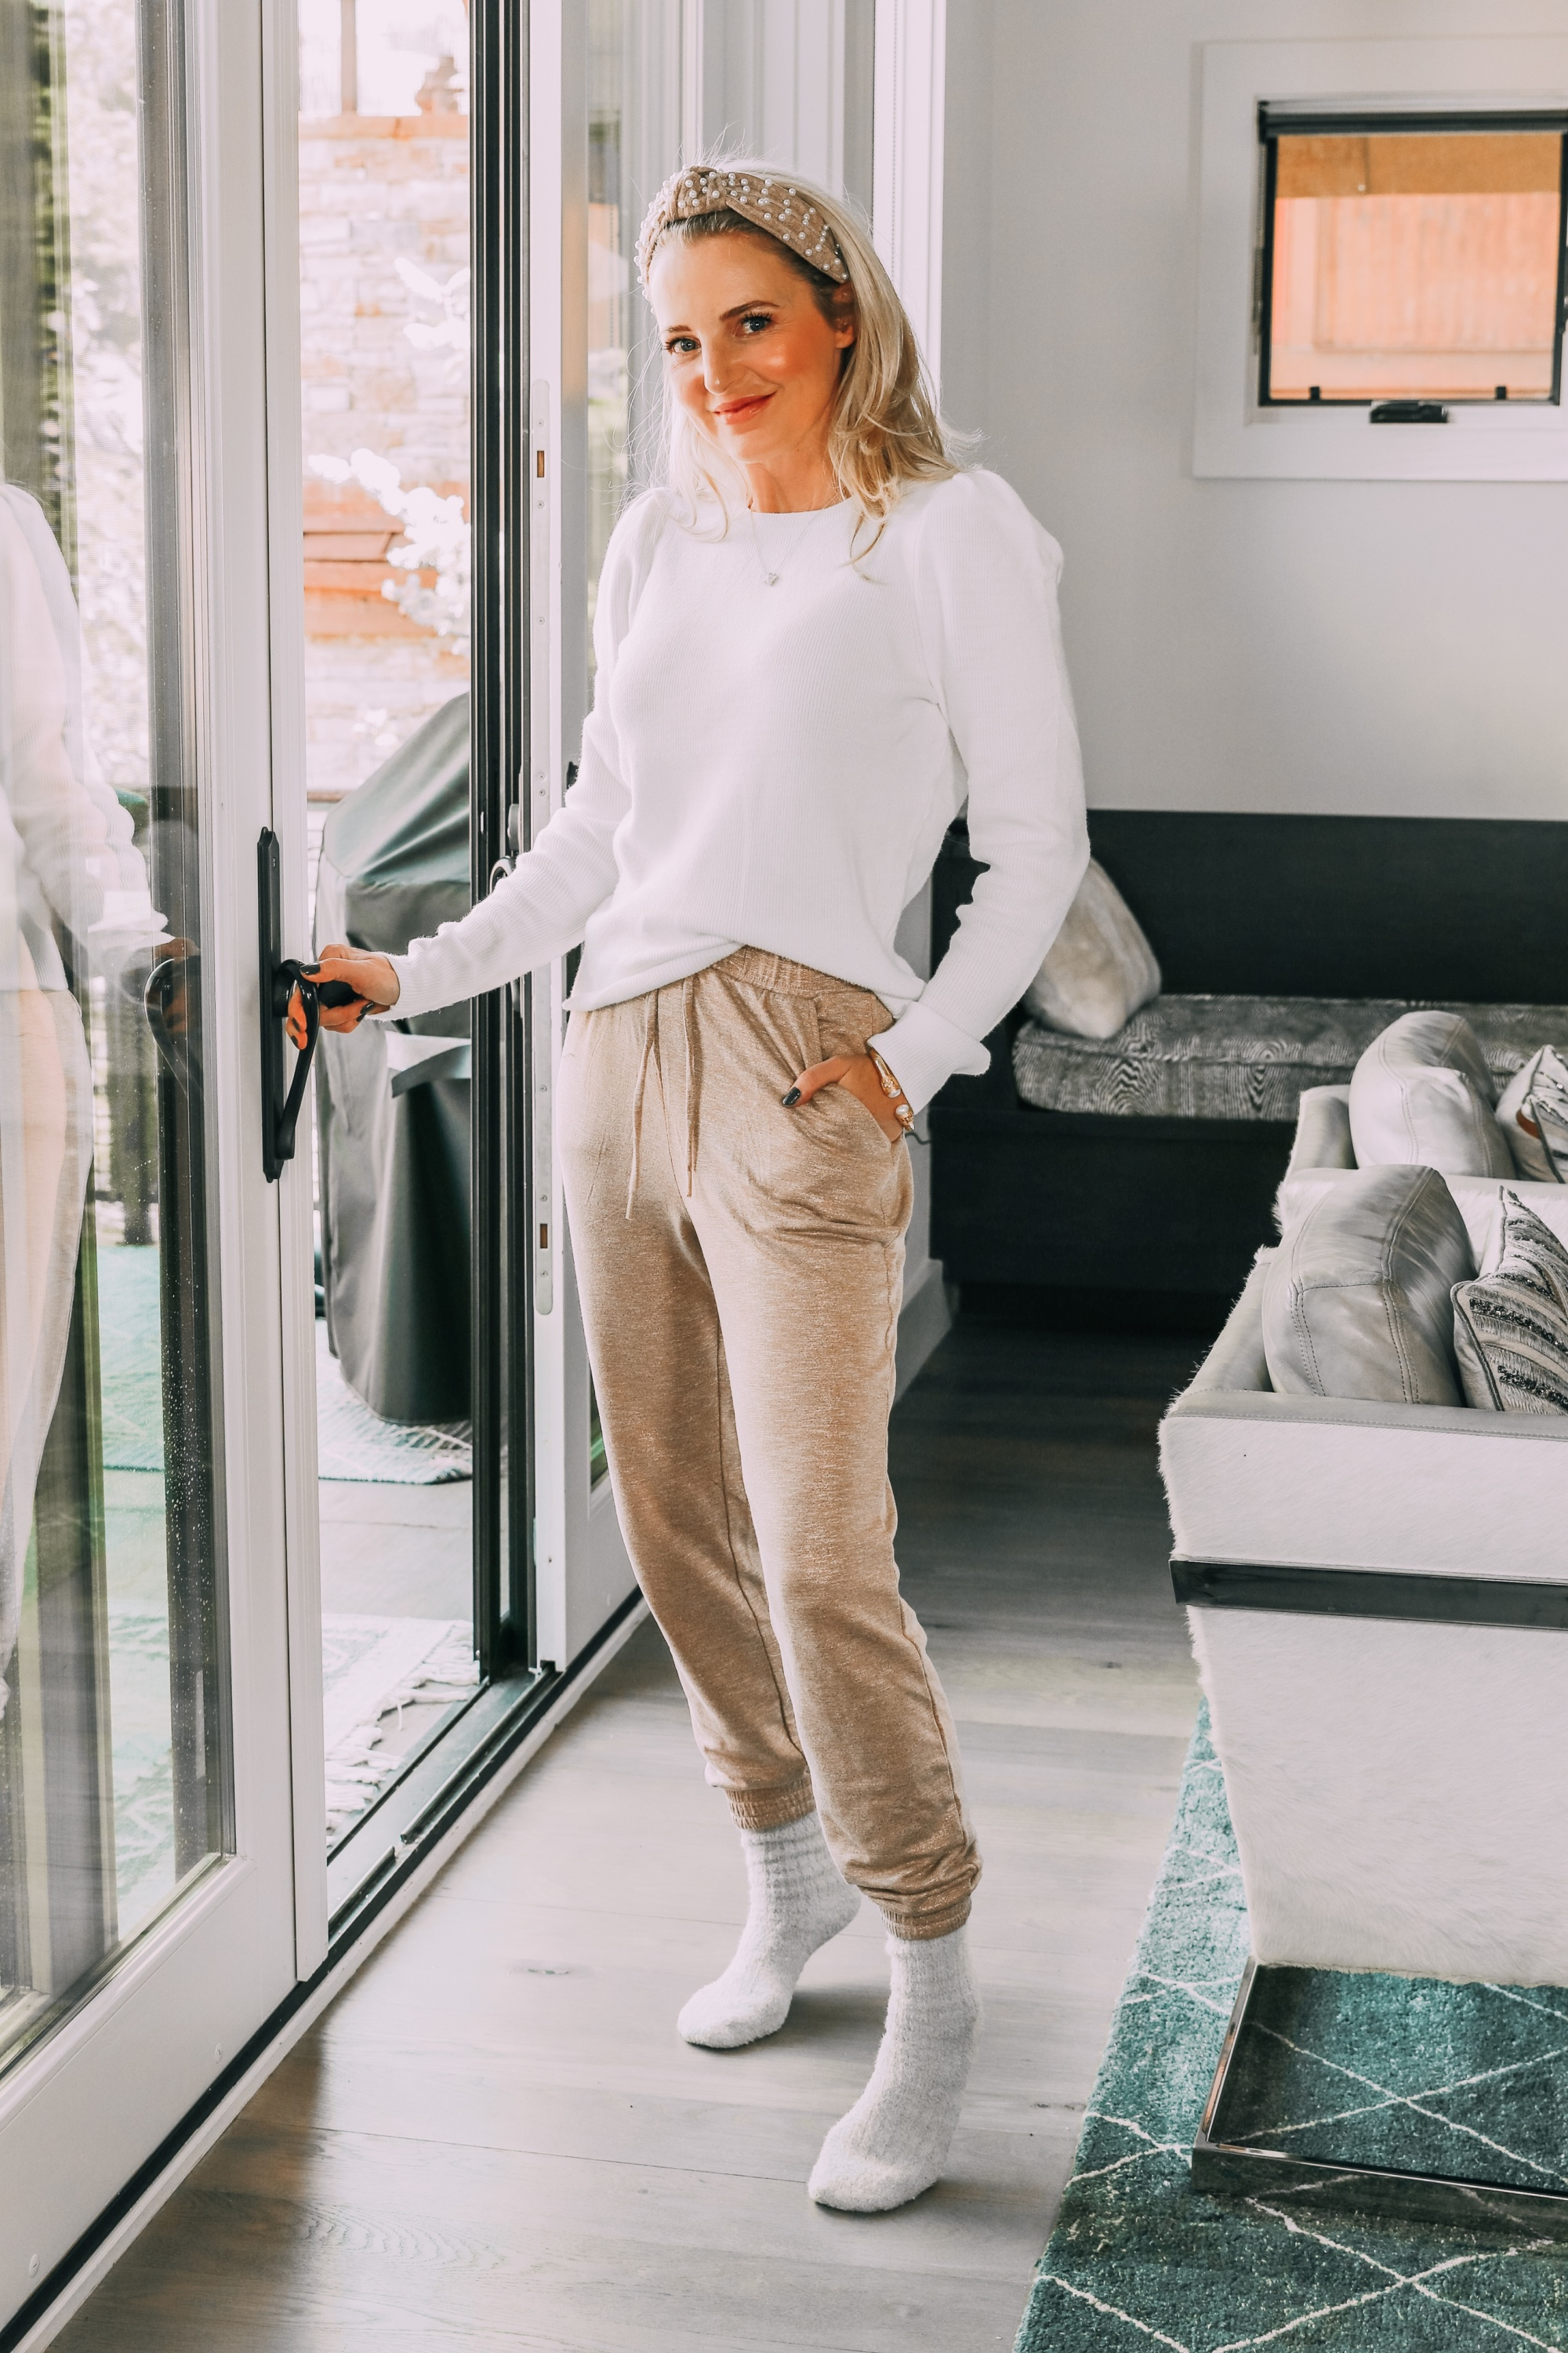 Stylish Loungewear, Erin Busbee of Busbee Style wearing tan metallic jogger pants, a white puff sleeve sweater, beige fuzzy socks, and a pearl beaded headband from Express in her living room in Telluride, Colorado